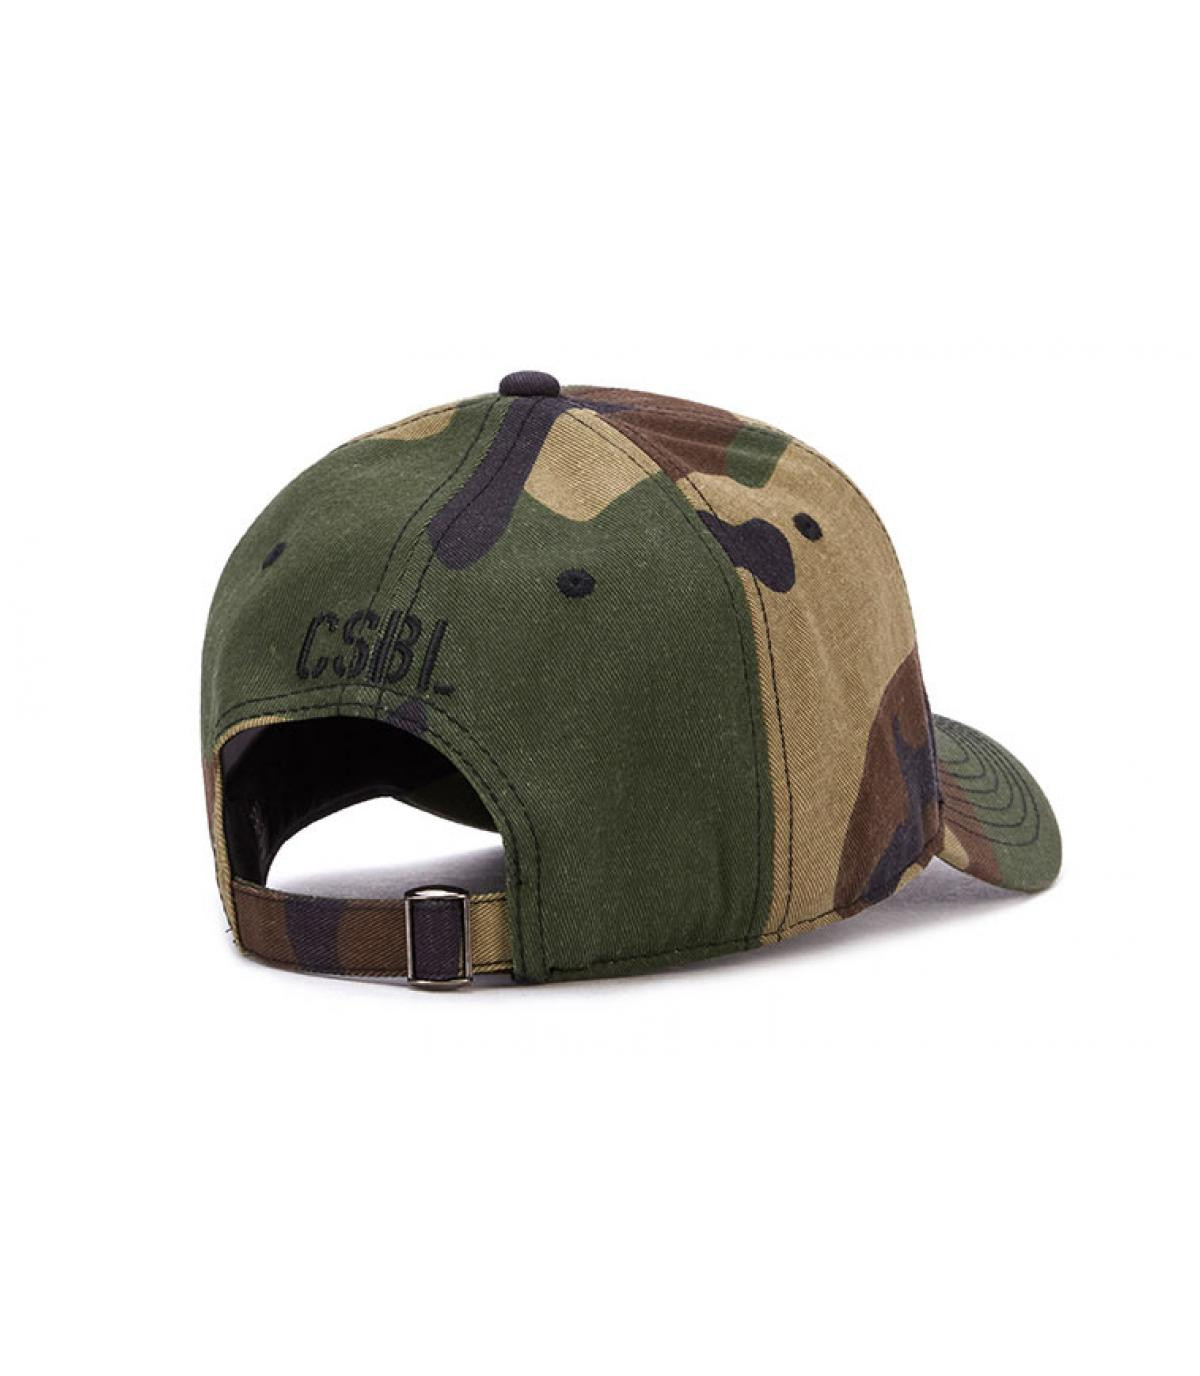 Détails Freedom Corps Curved camo - image 5